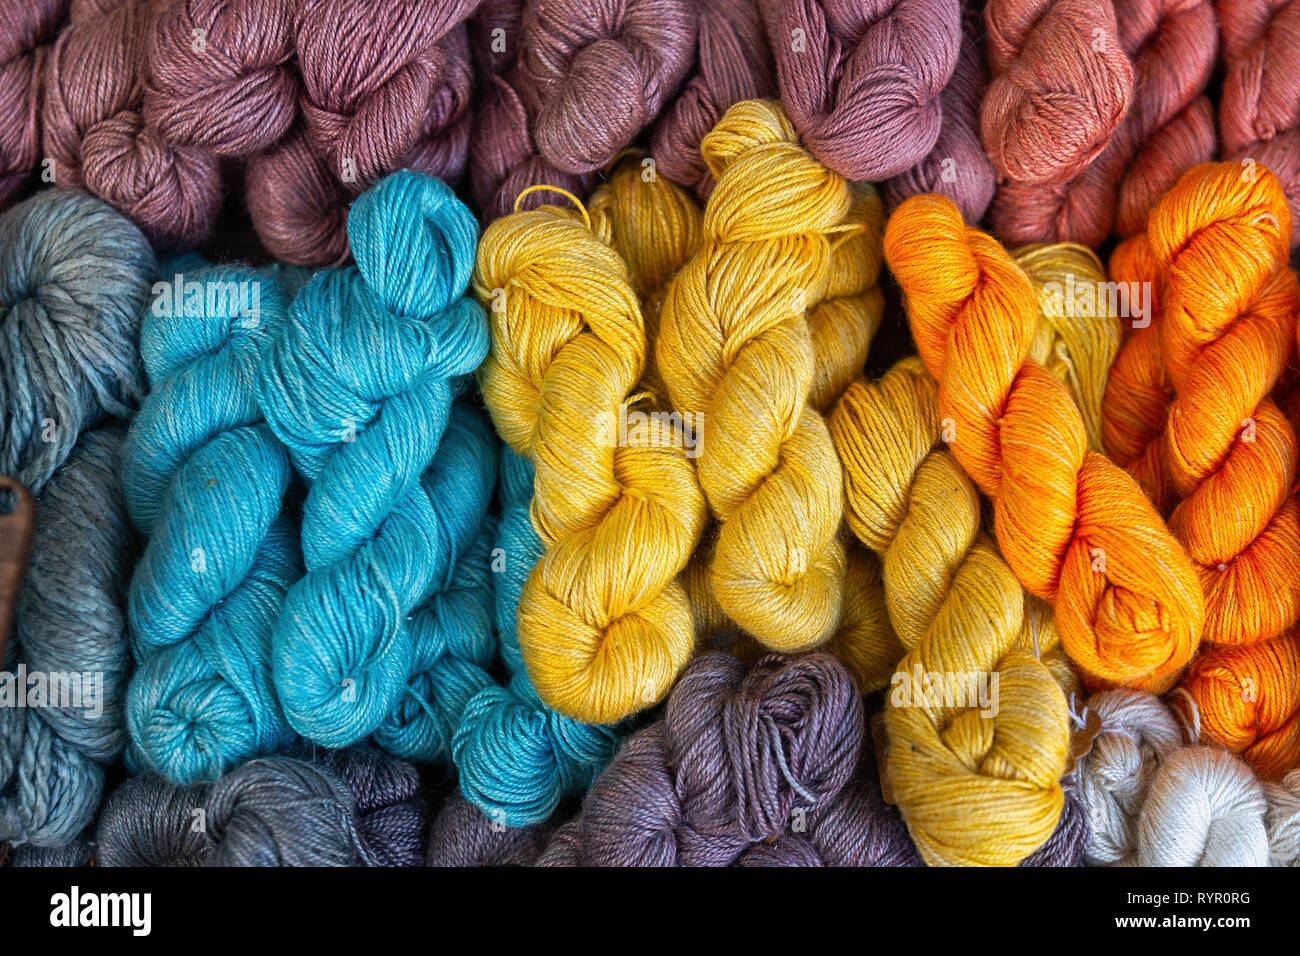 A Pile Of Natural Knitting Yarn Of Yellow Orange Blue And Brown